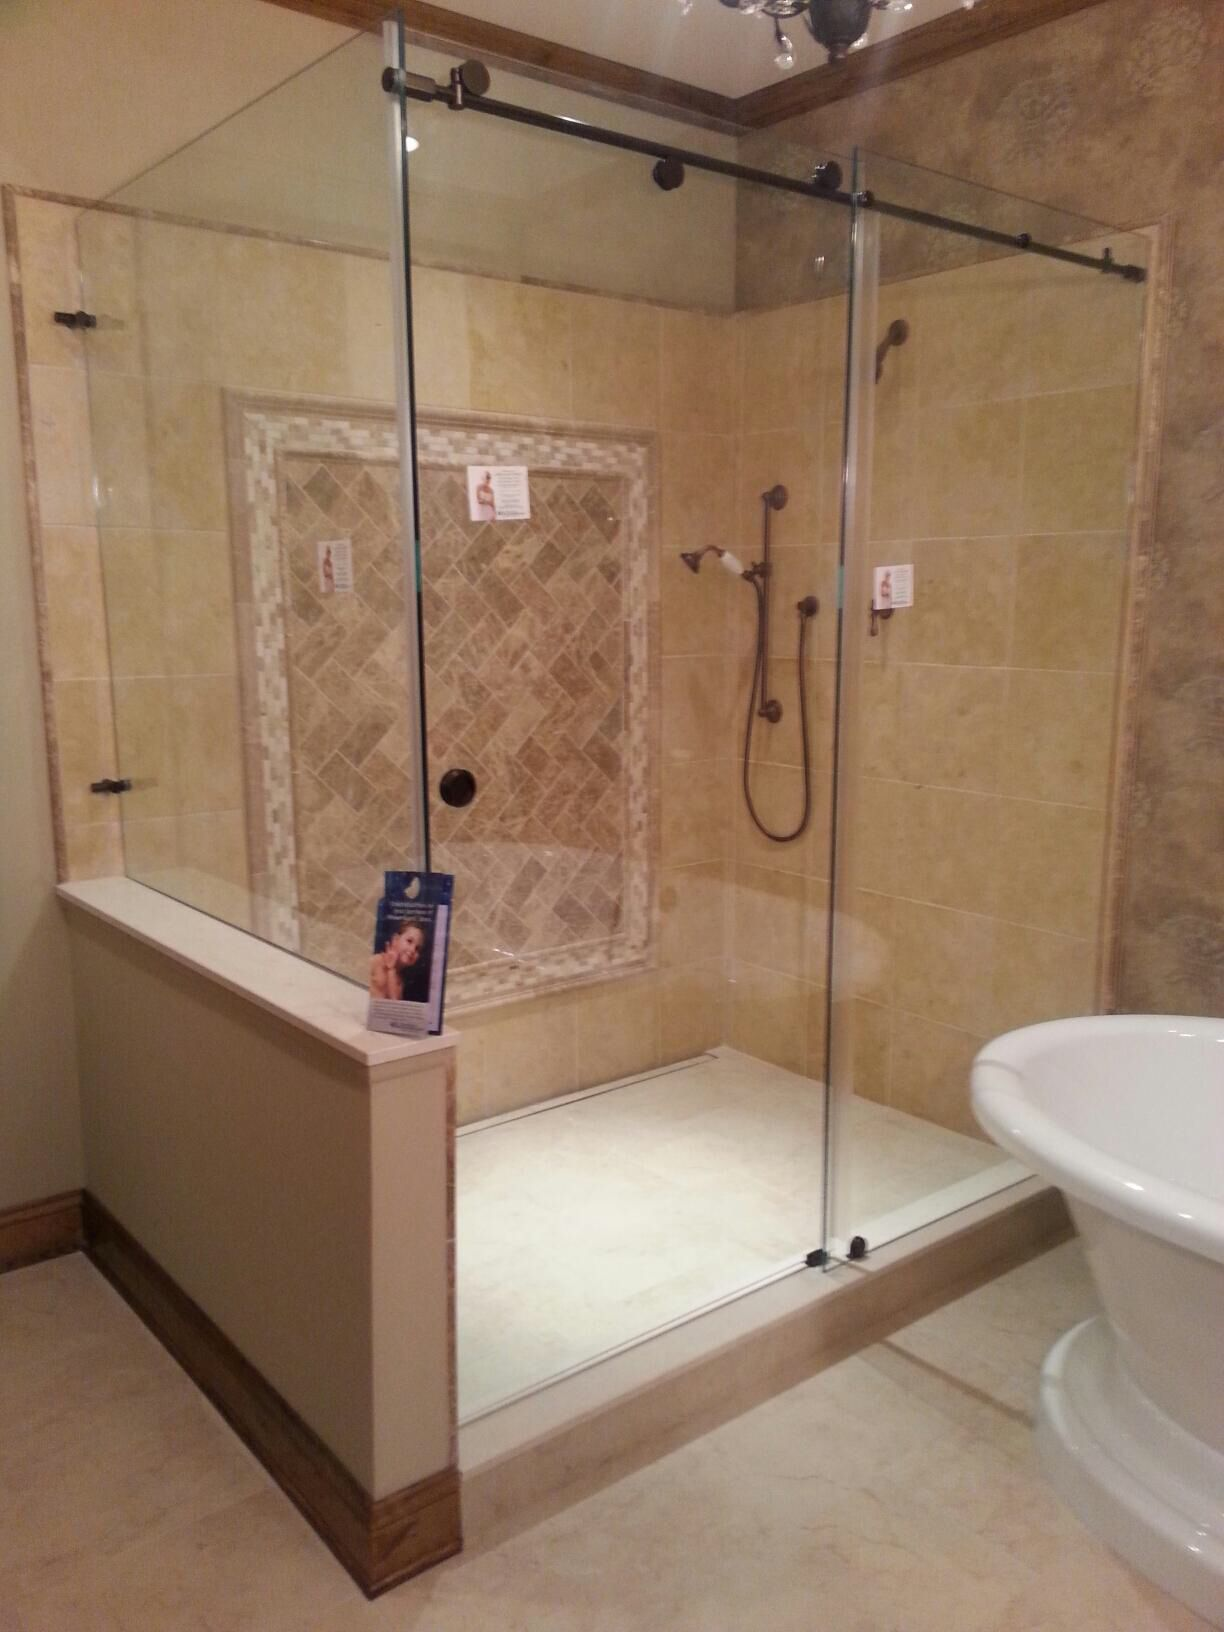 Find this Pin and more on Shower Doors. - Cardinal Skyline With Guardian Showerguard #baileyscustomglass